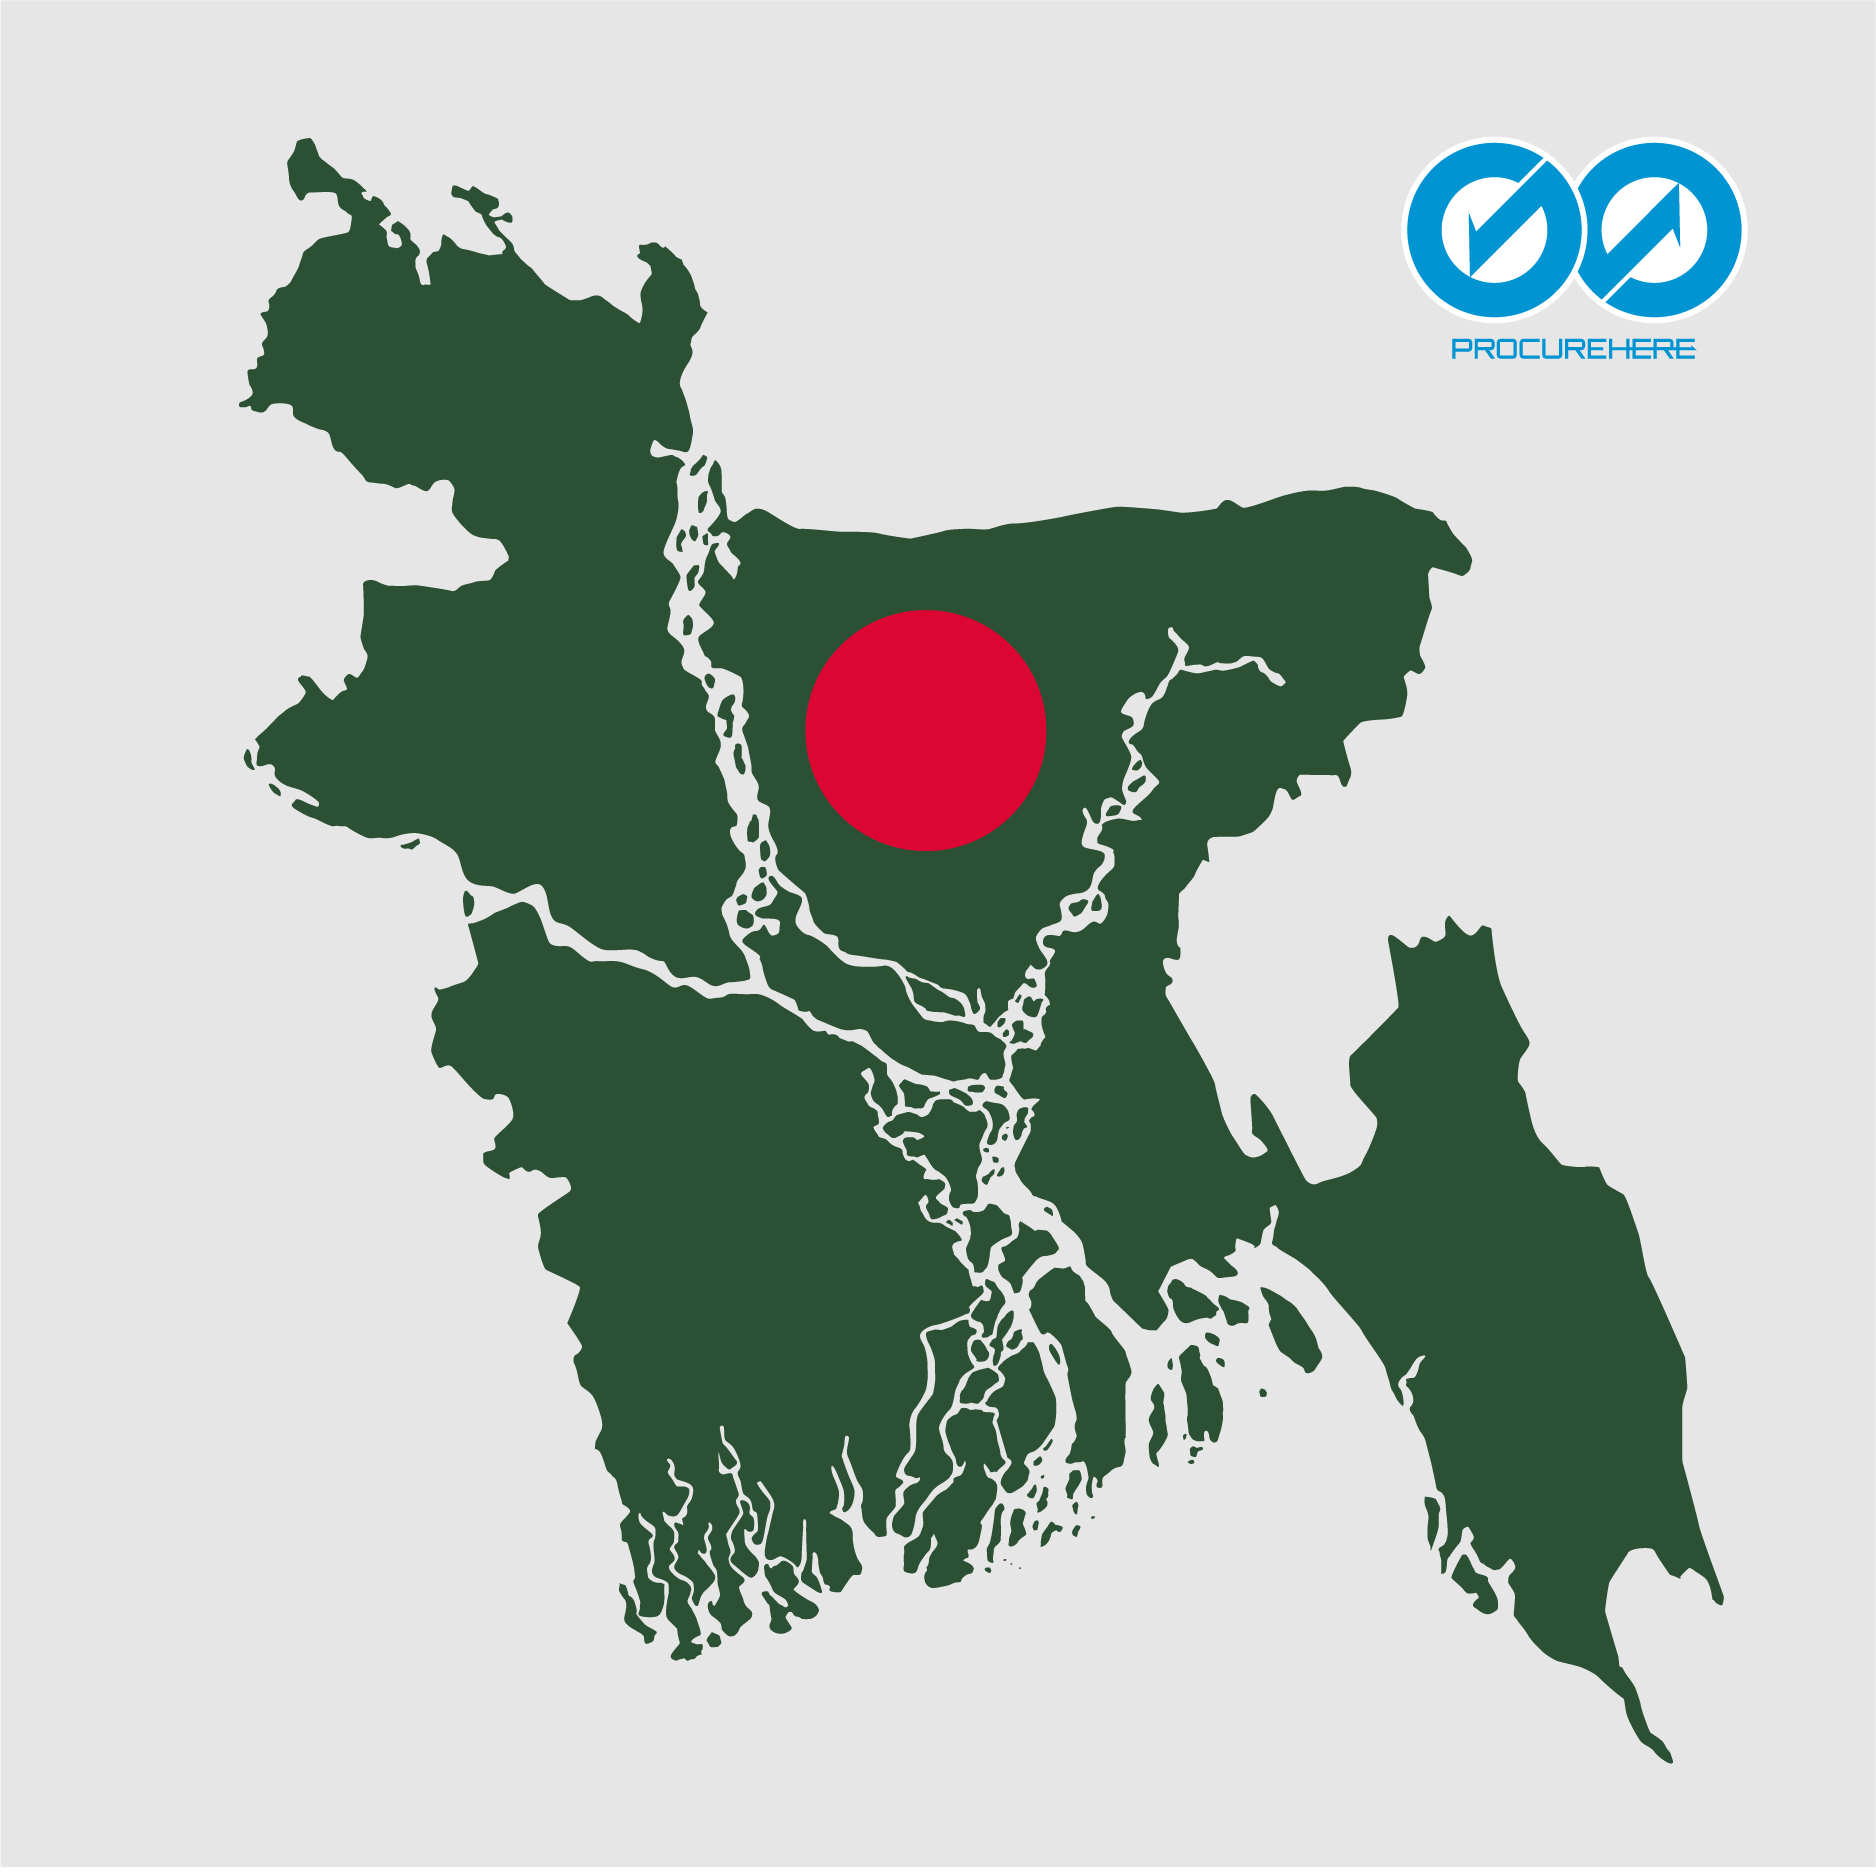 Government Tenders in Bangladesh.